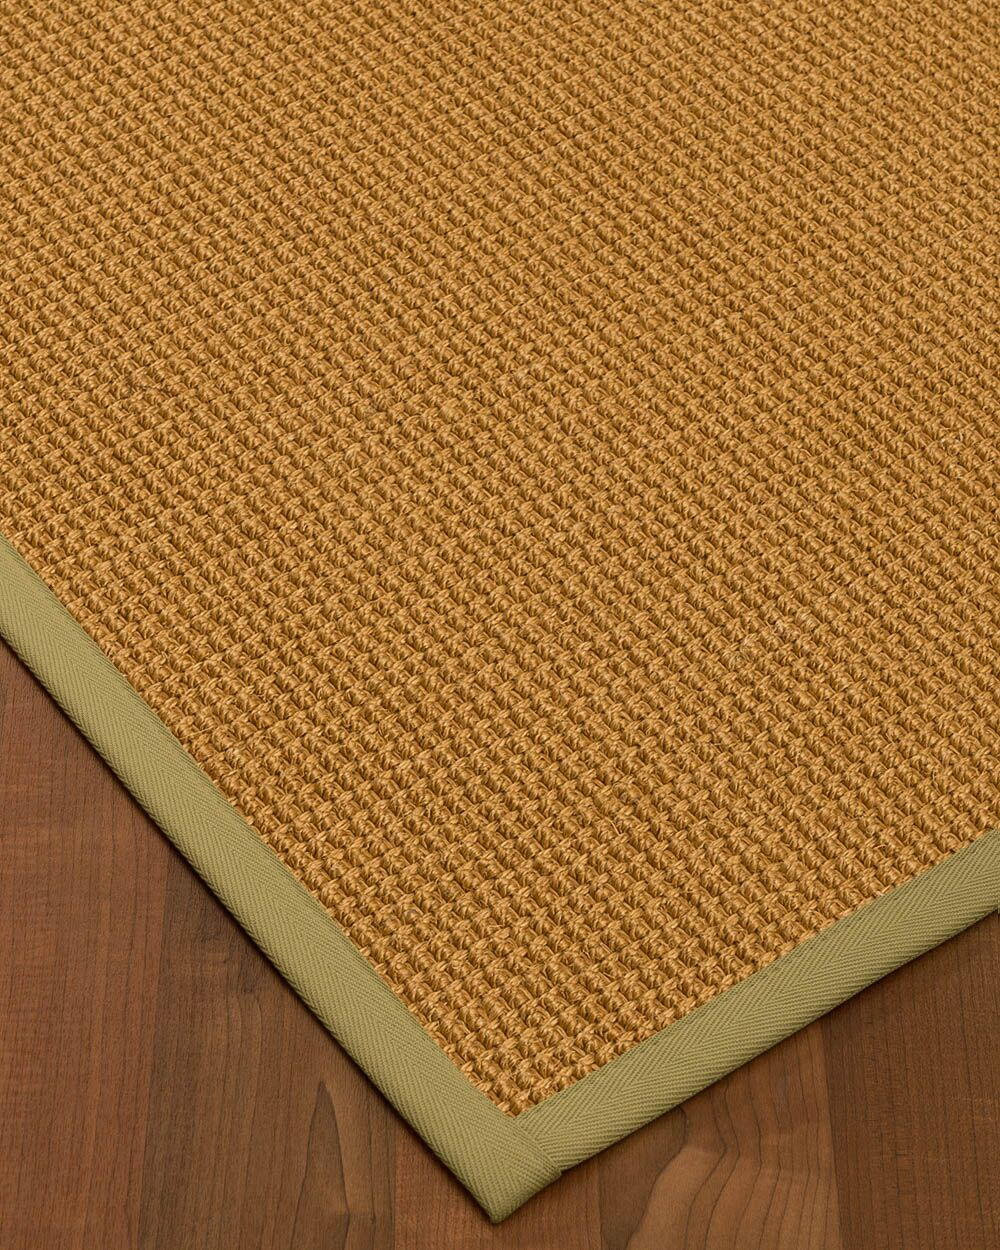 Aula Border Hand-Woven Brown/Natural Area Rug Rug Size: Rectangle 12' x 15', Rug Pad Included: Yes